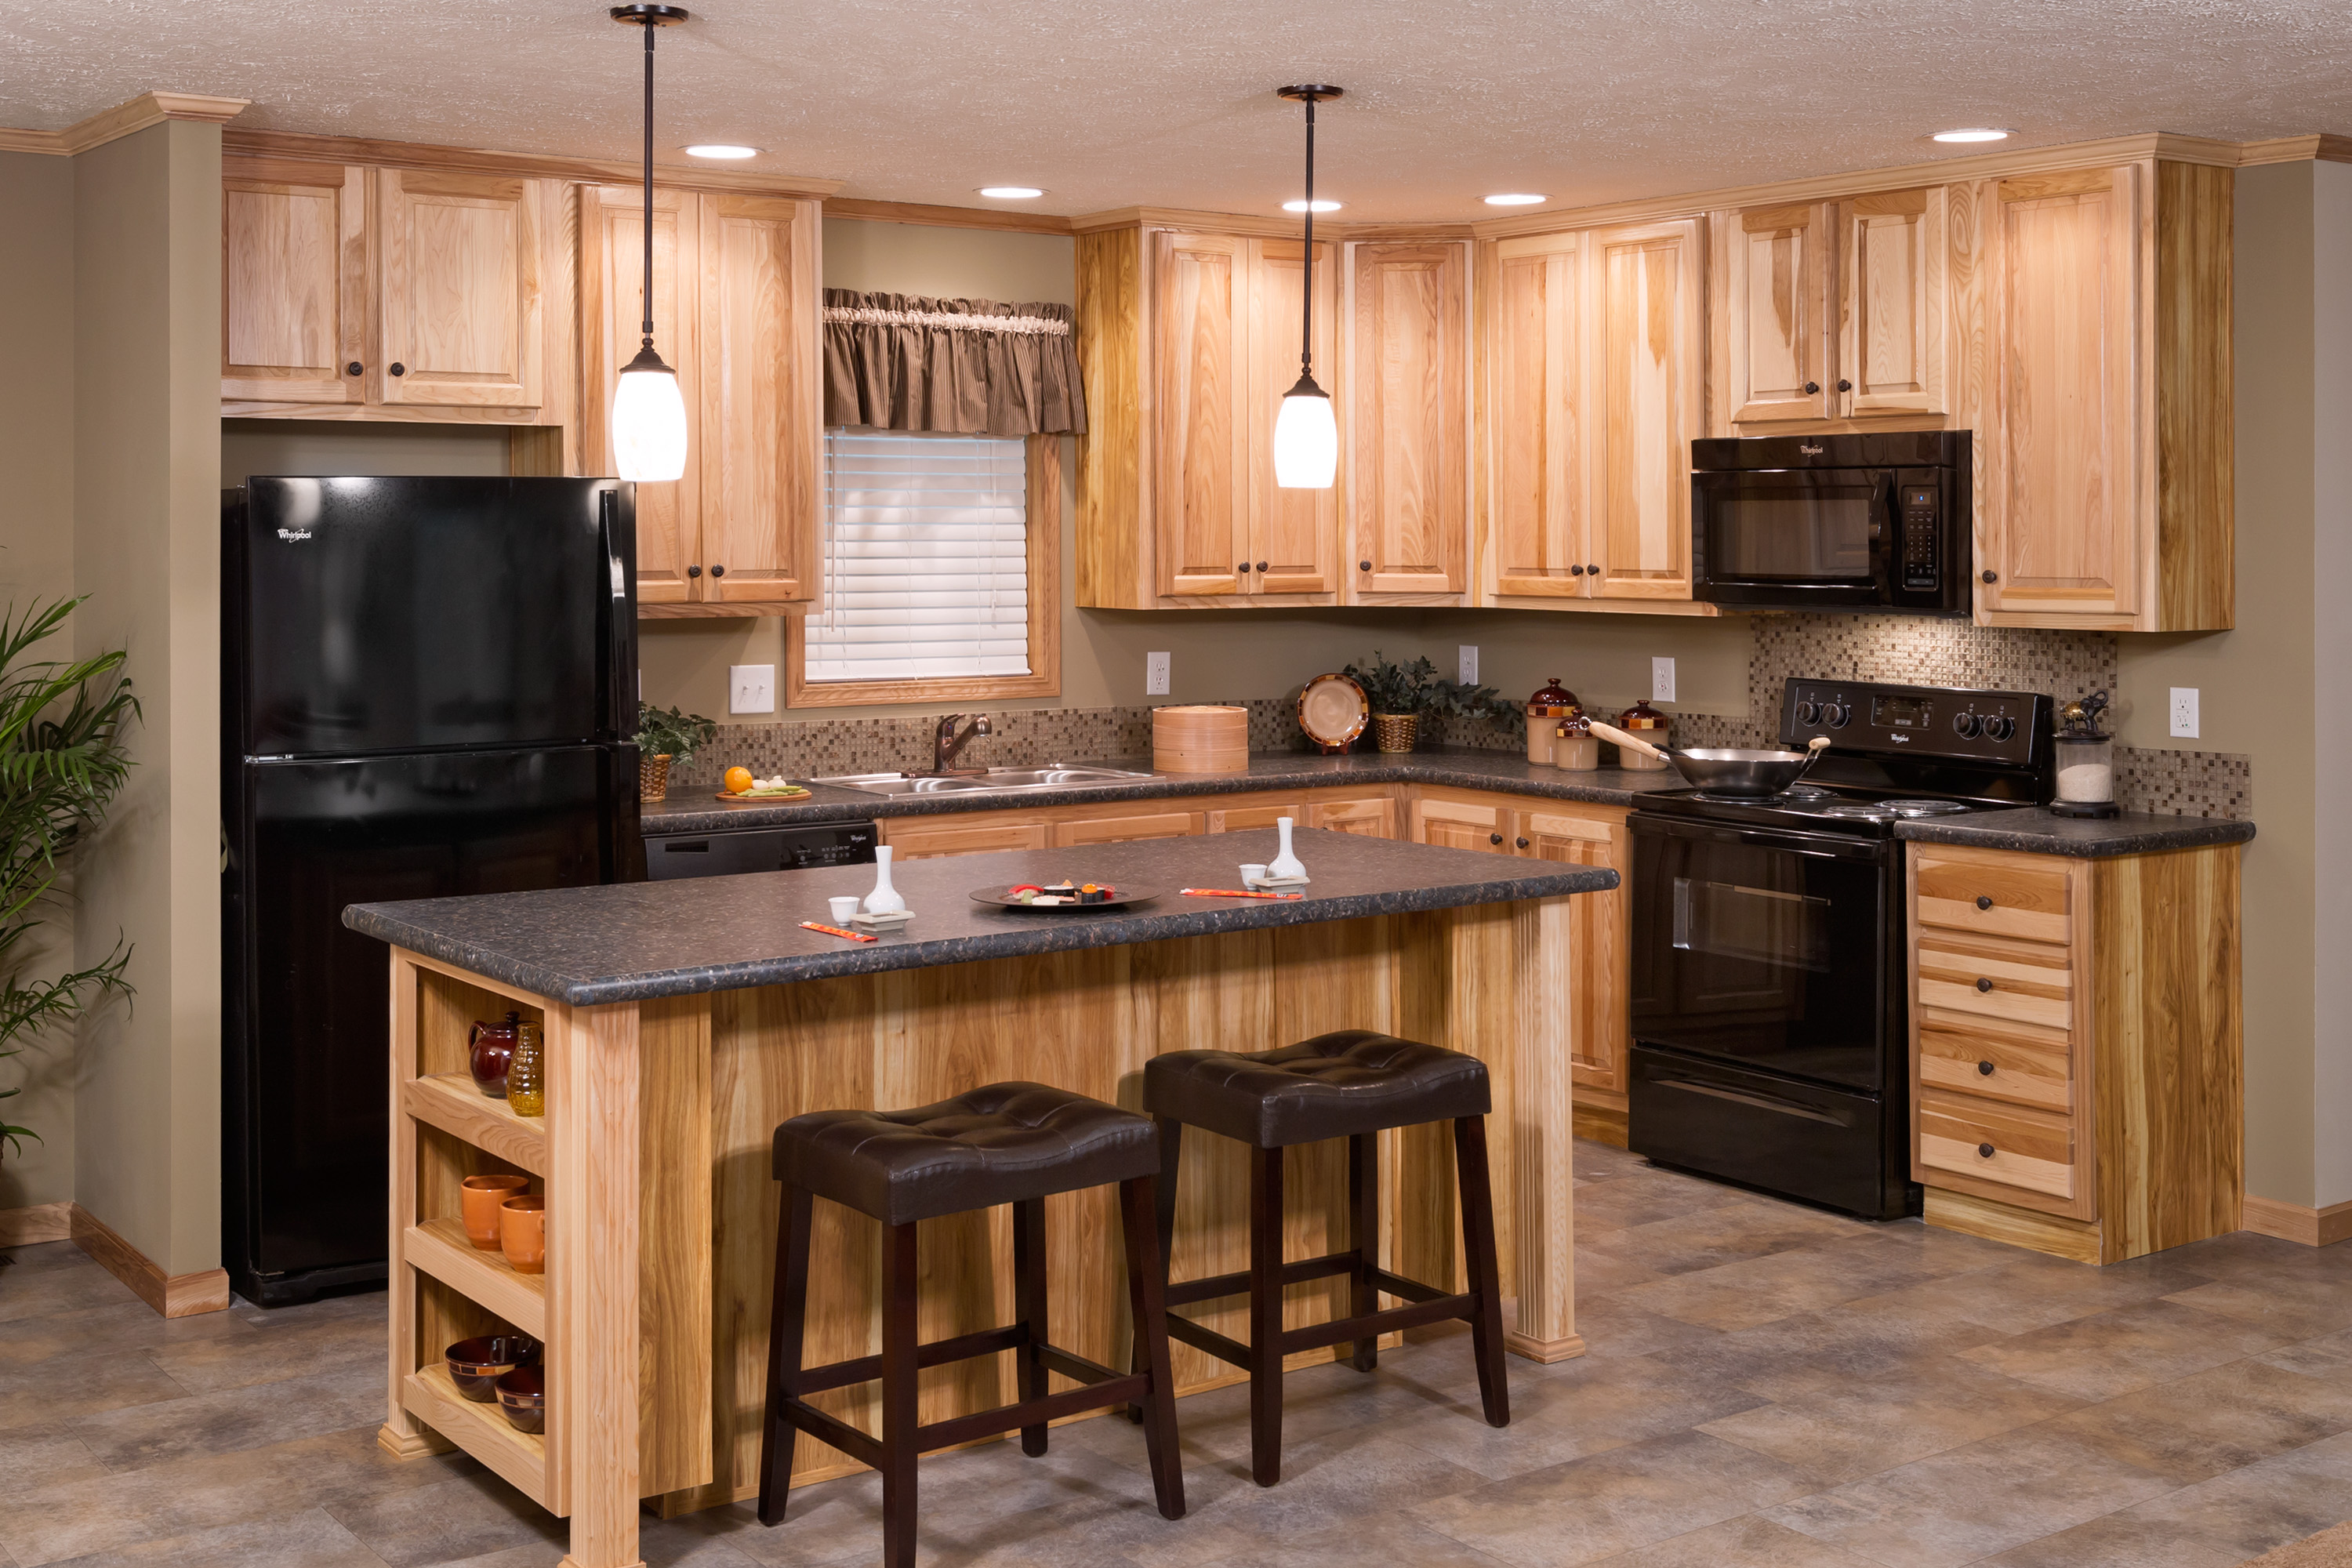 Redman Model Home With Hickory Cabinets Brooks Village